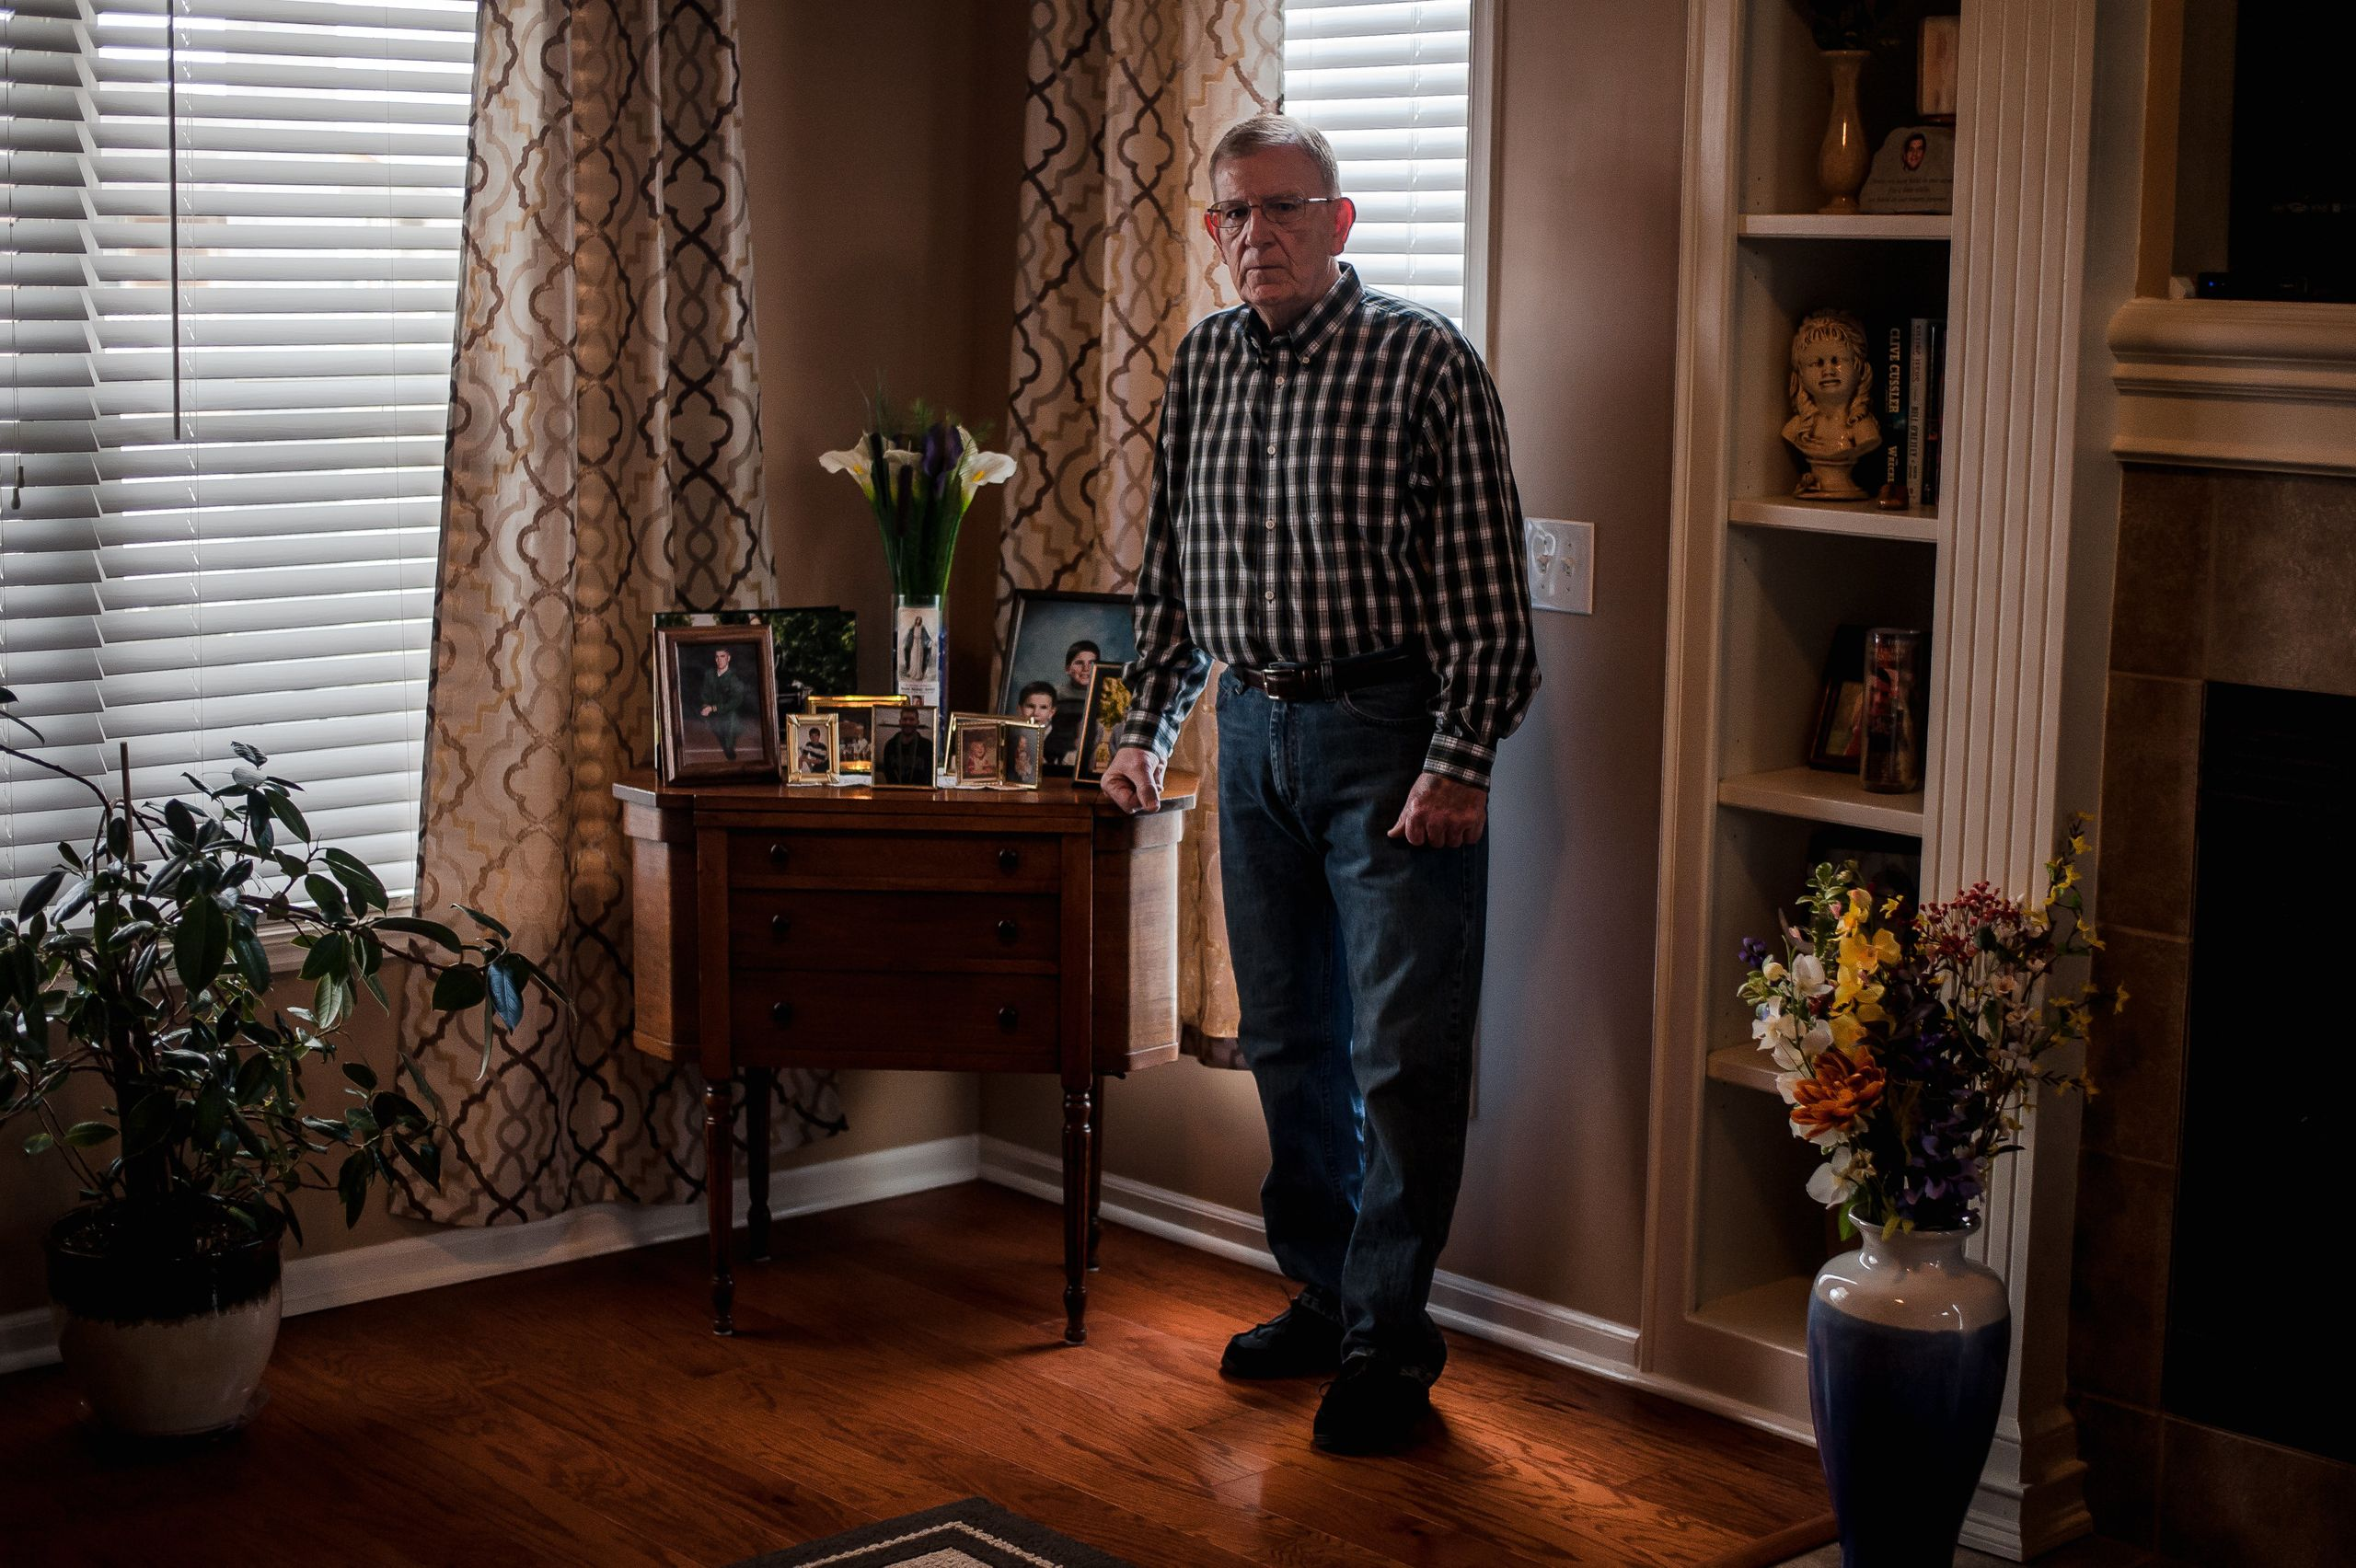 Bob Arthur in his Missouri home next to a memorial for his son Shawn Arthur.